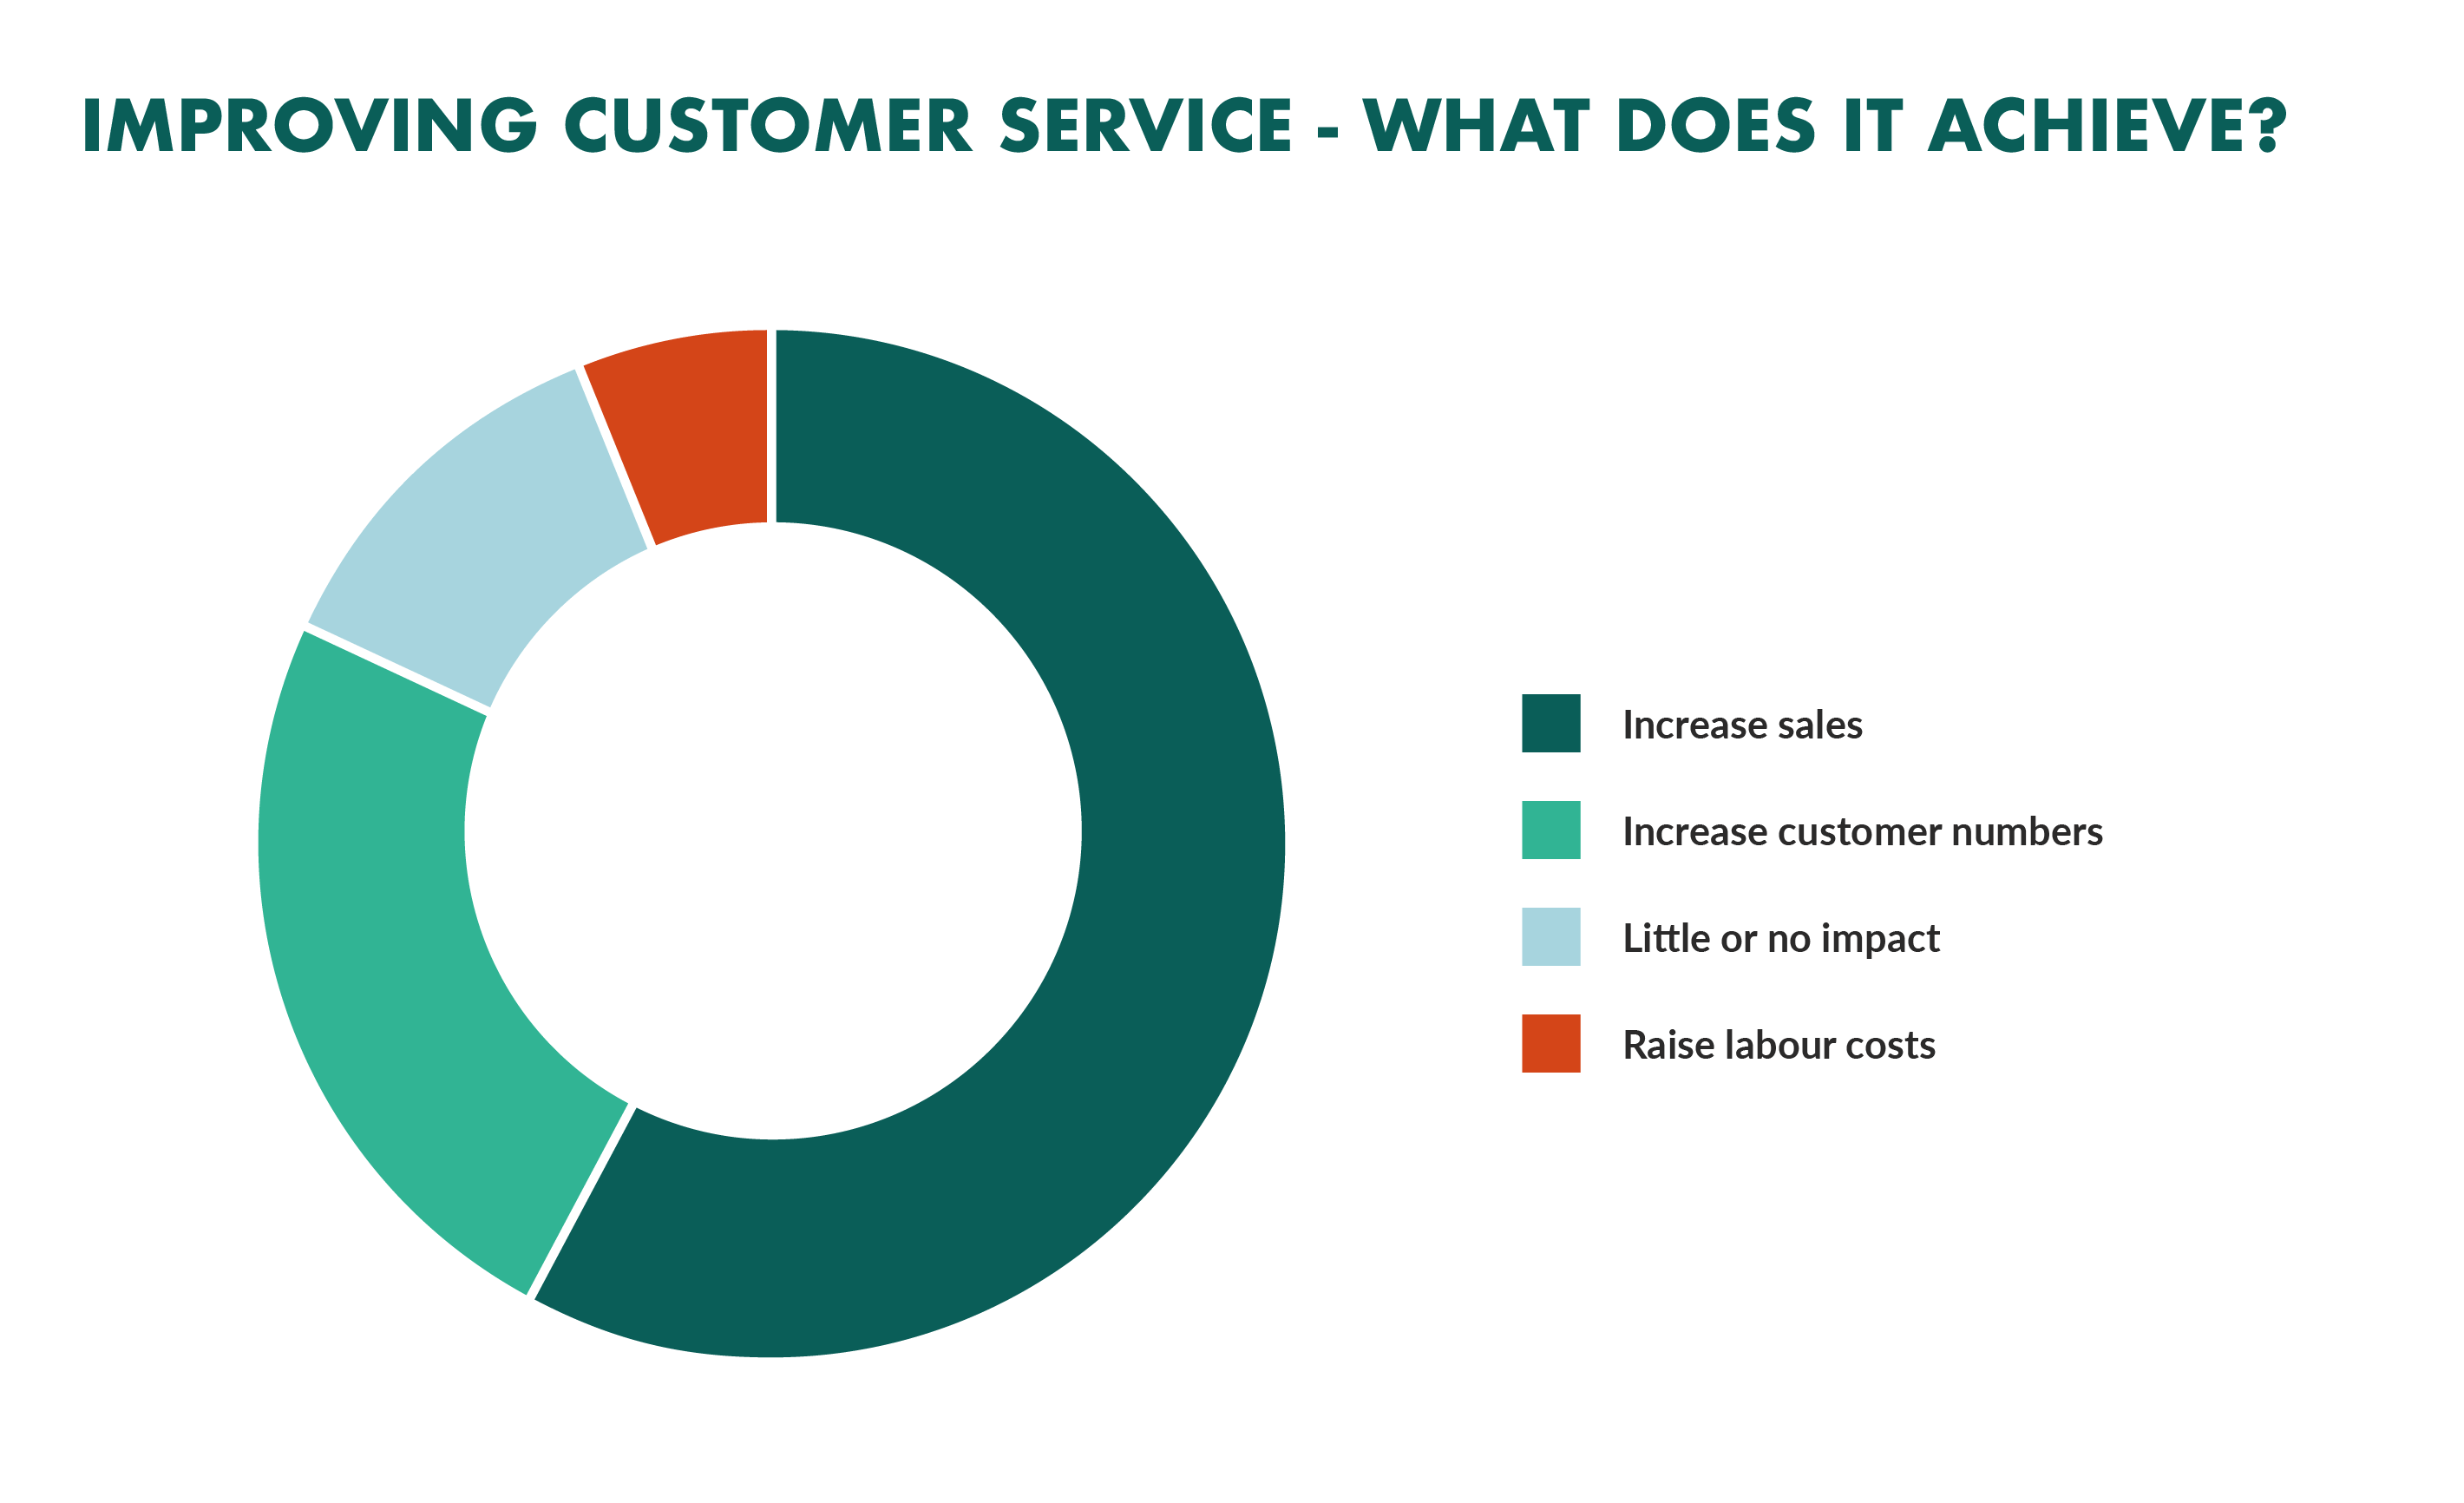 Customer service benefits